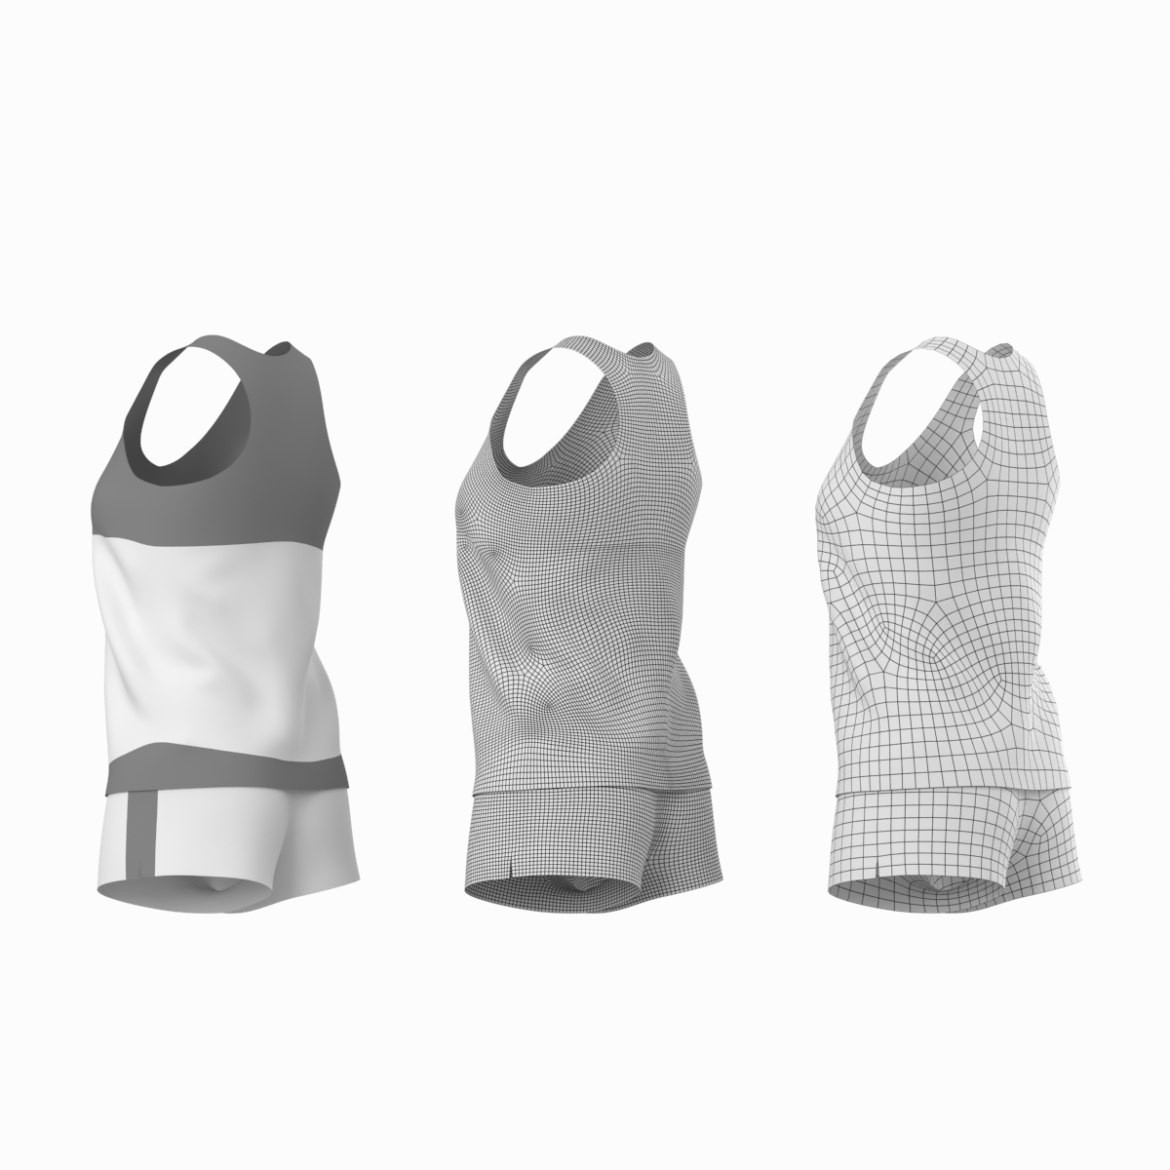 woman sportswear 03 base mesh design kit 3d model 3ds max fbx blend c4d dae ma mb  obj ztl 321875